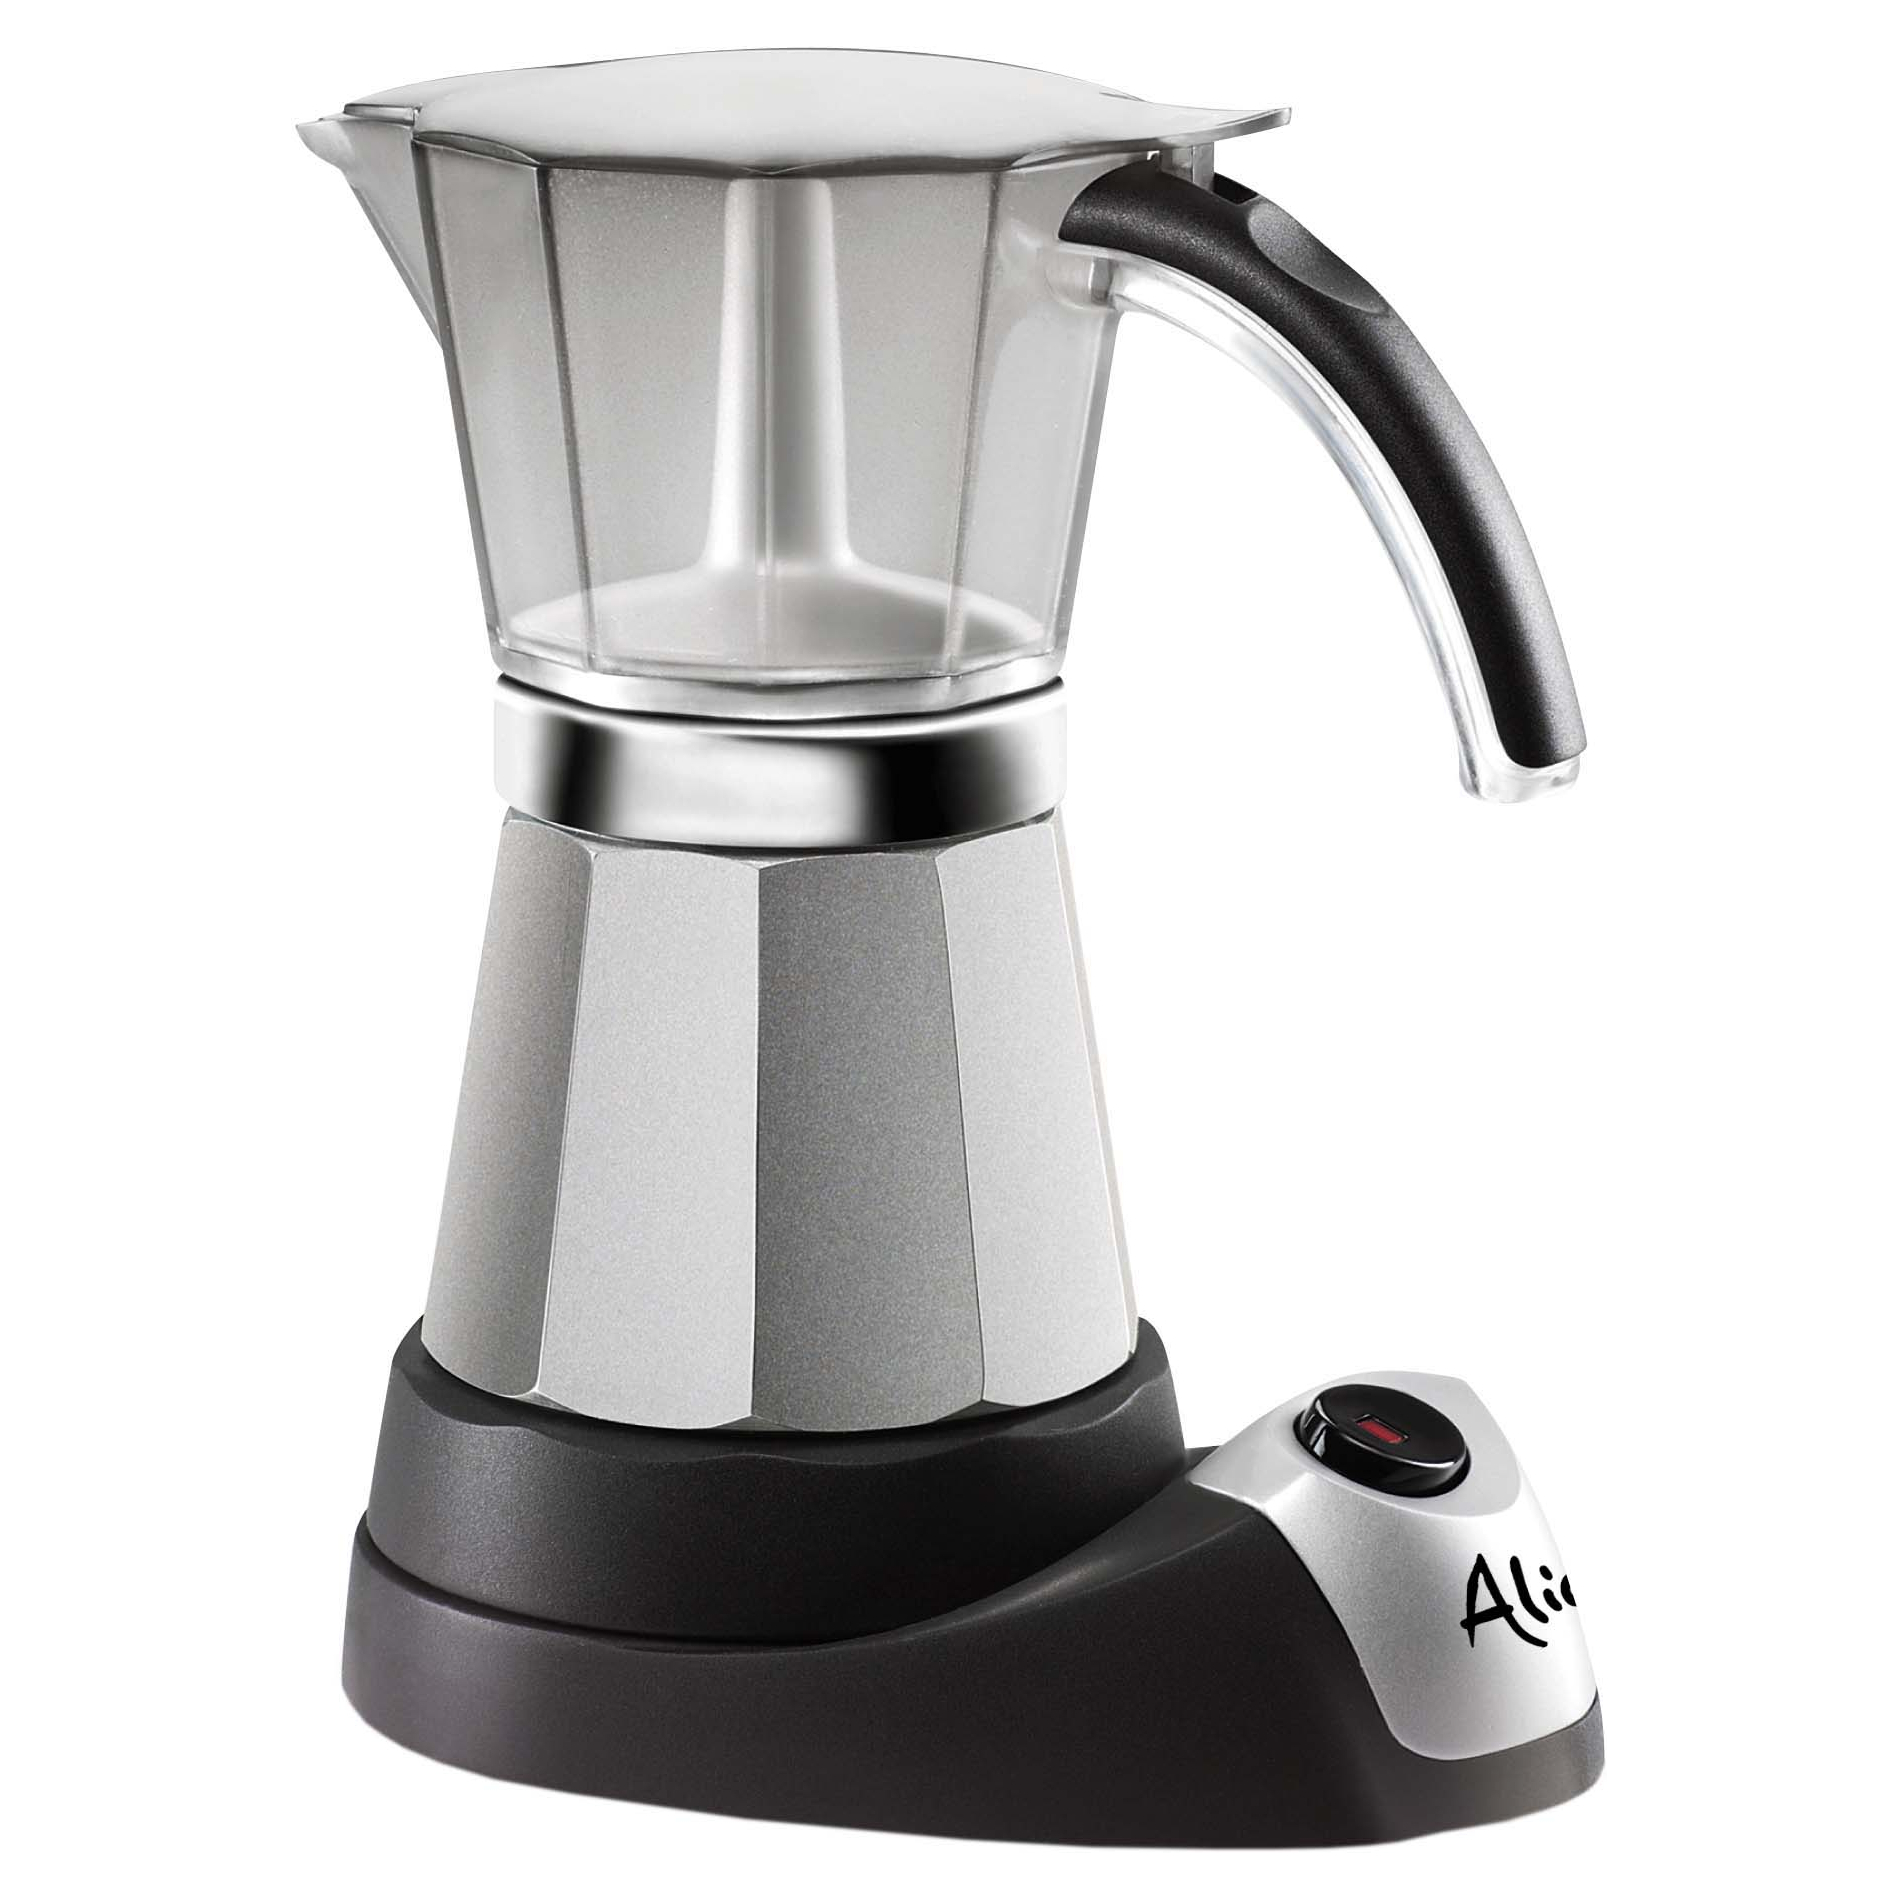 DeLonghi Alicia Moka Espresso and Coffee System